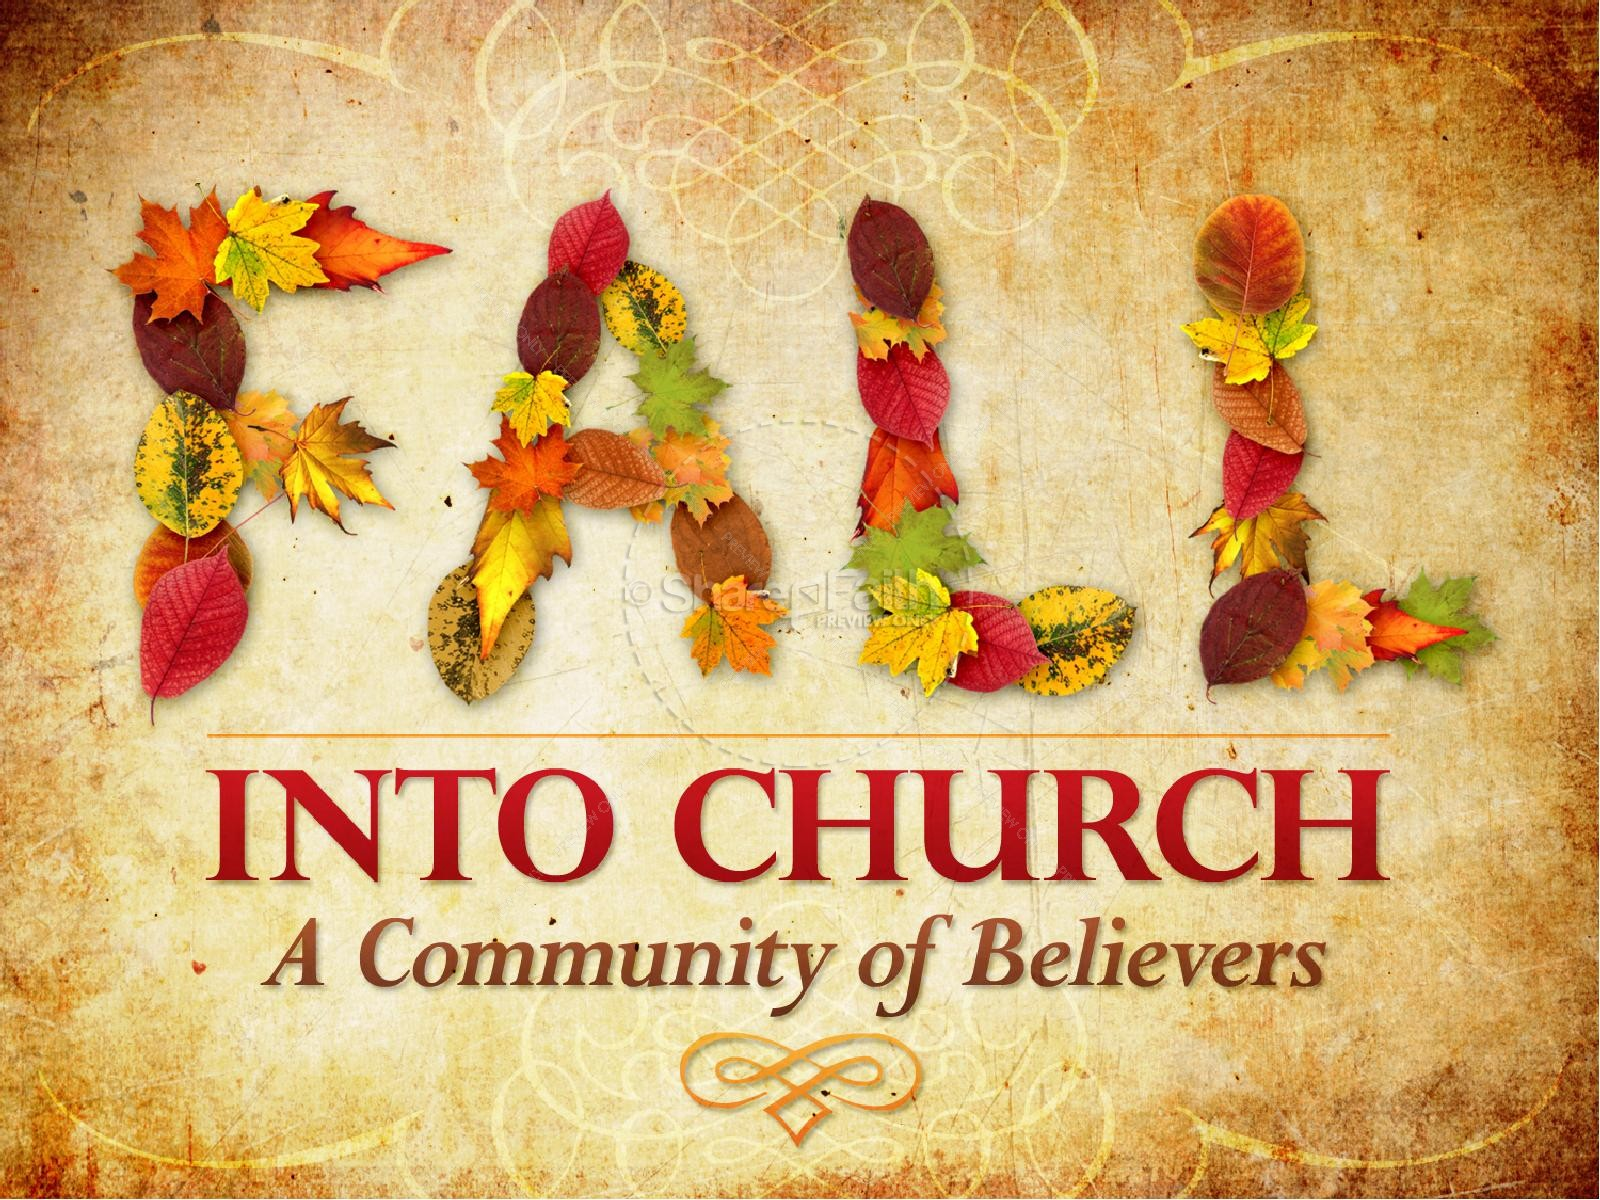 Free Fall Scripture Wallpaper Church Community Autumn Powerpoint Fall Thanksgiving